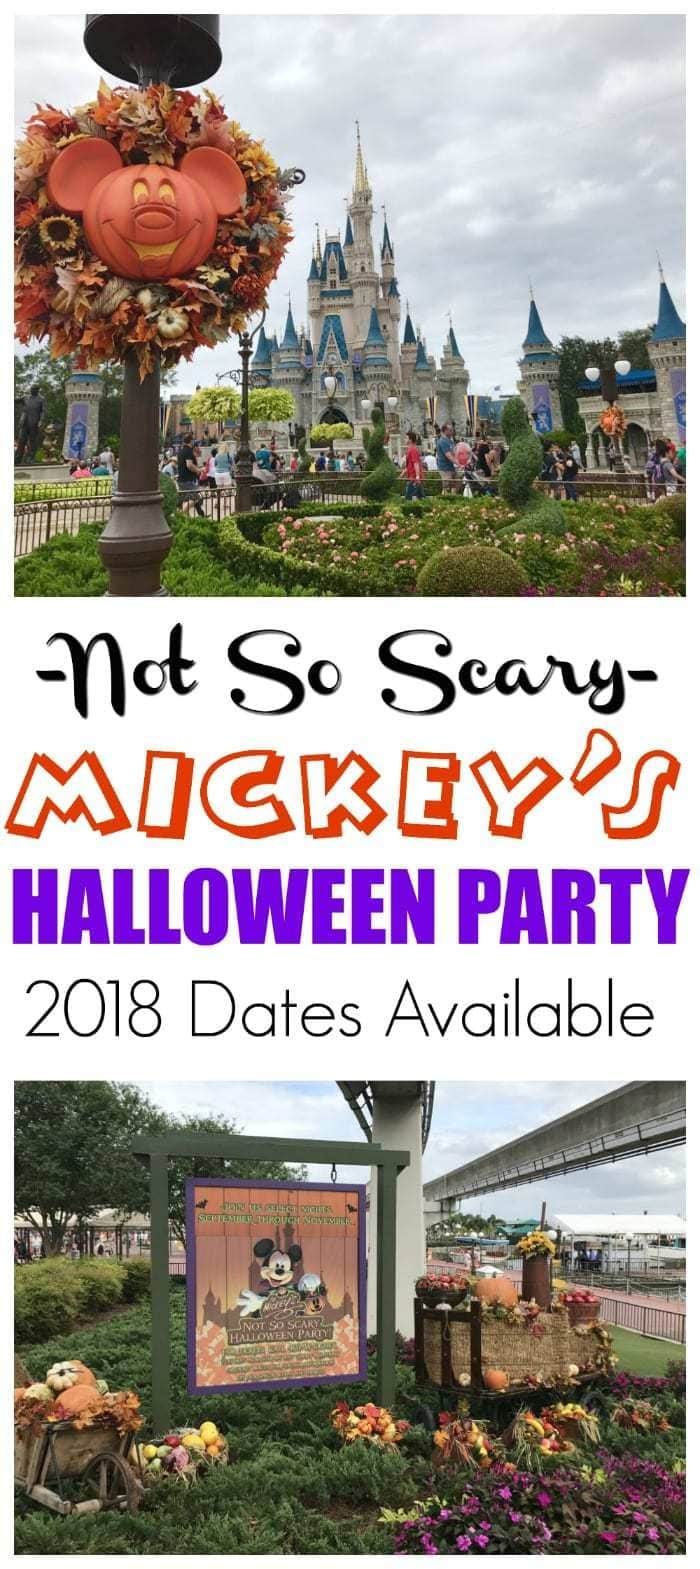 If you're traveling to Walt Disney World during the Fall season, you can't miss Mickey's Not So Scary Halloween Party. Runs Aug thru Nov at Magic Kingdom. #MagicKingdom #MNSSHP #Disney https://www.lifefamilyfun.com/mickeys-not-scary-halloween-party-magic-kingdom/